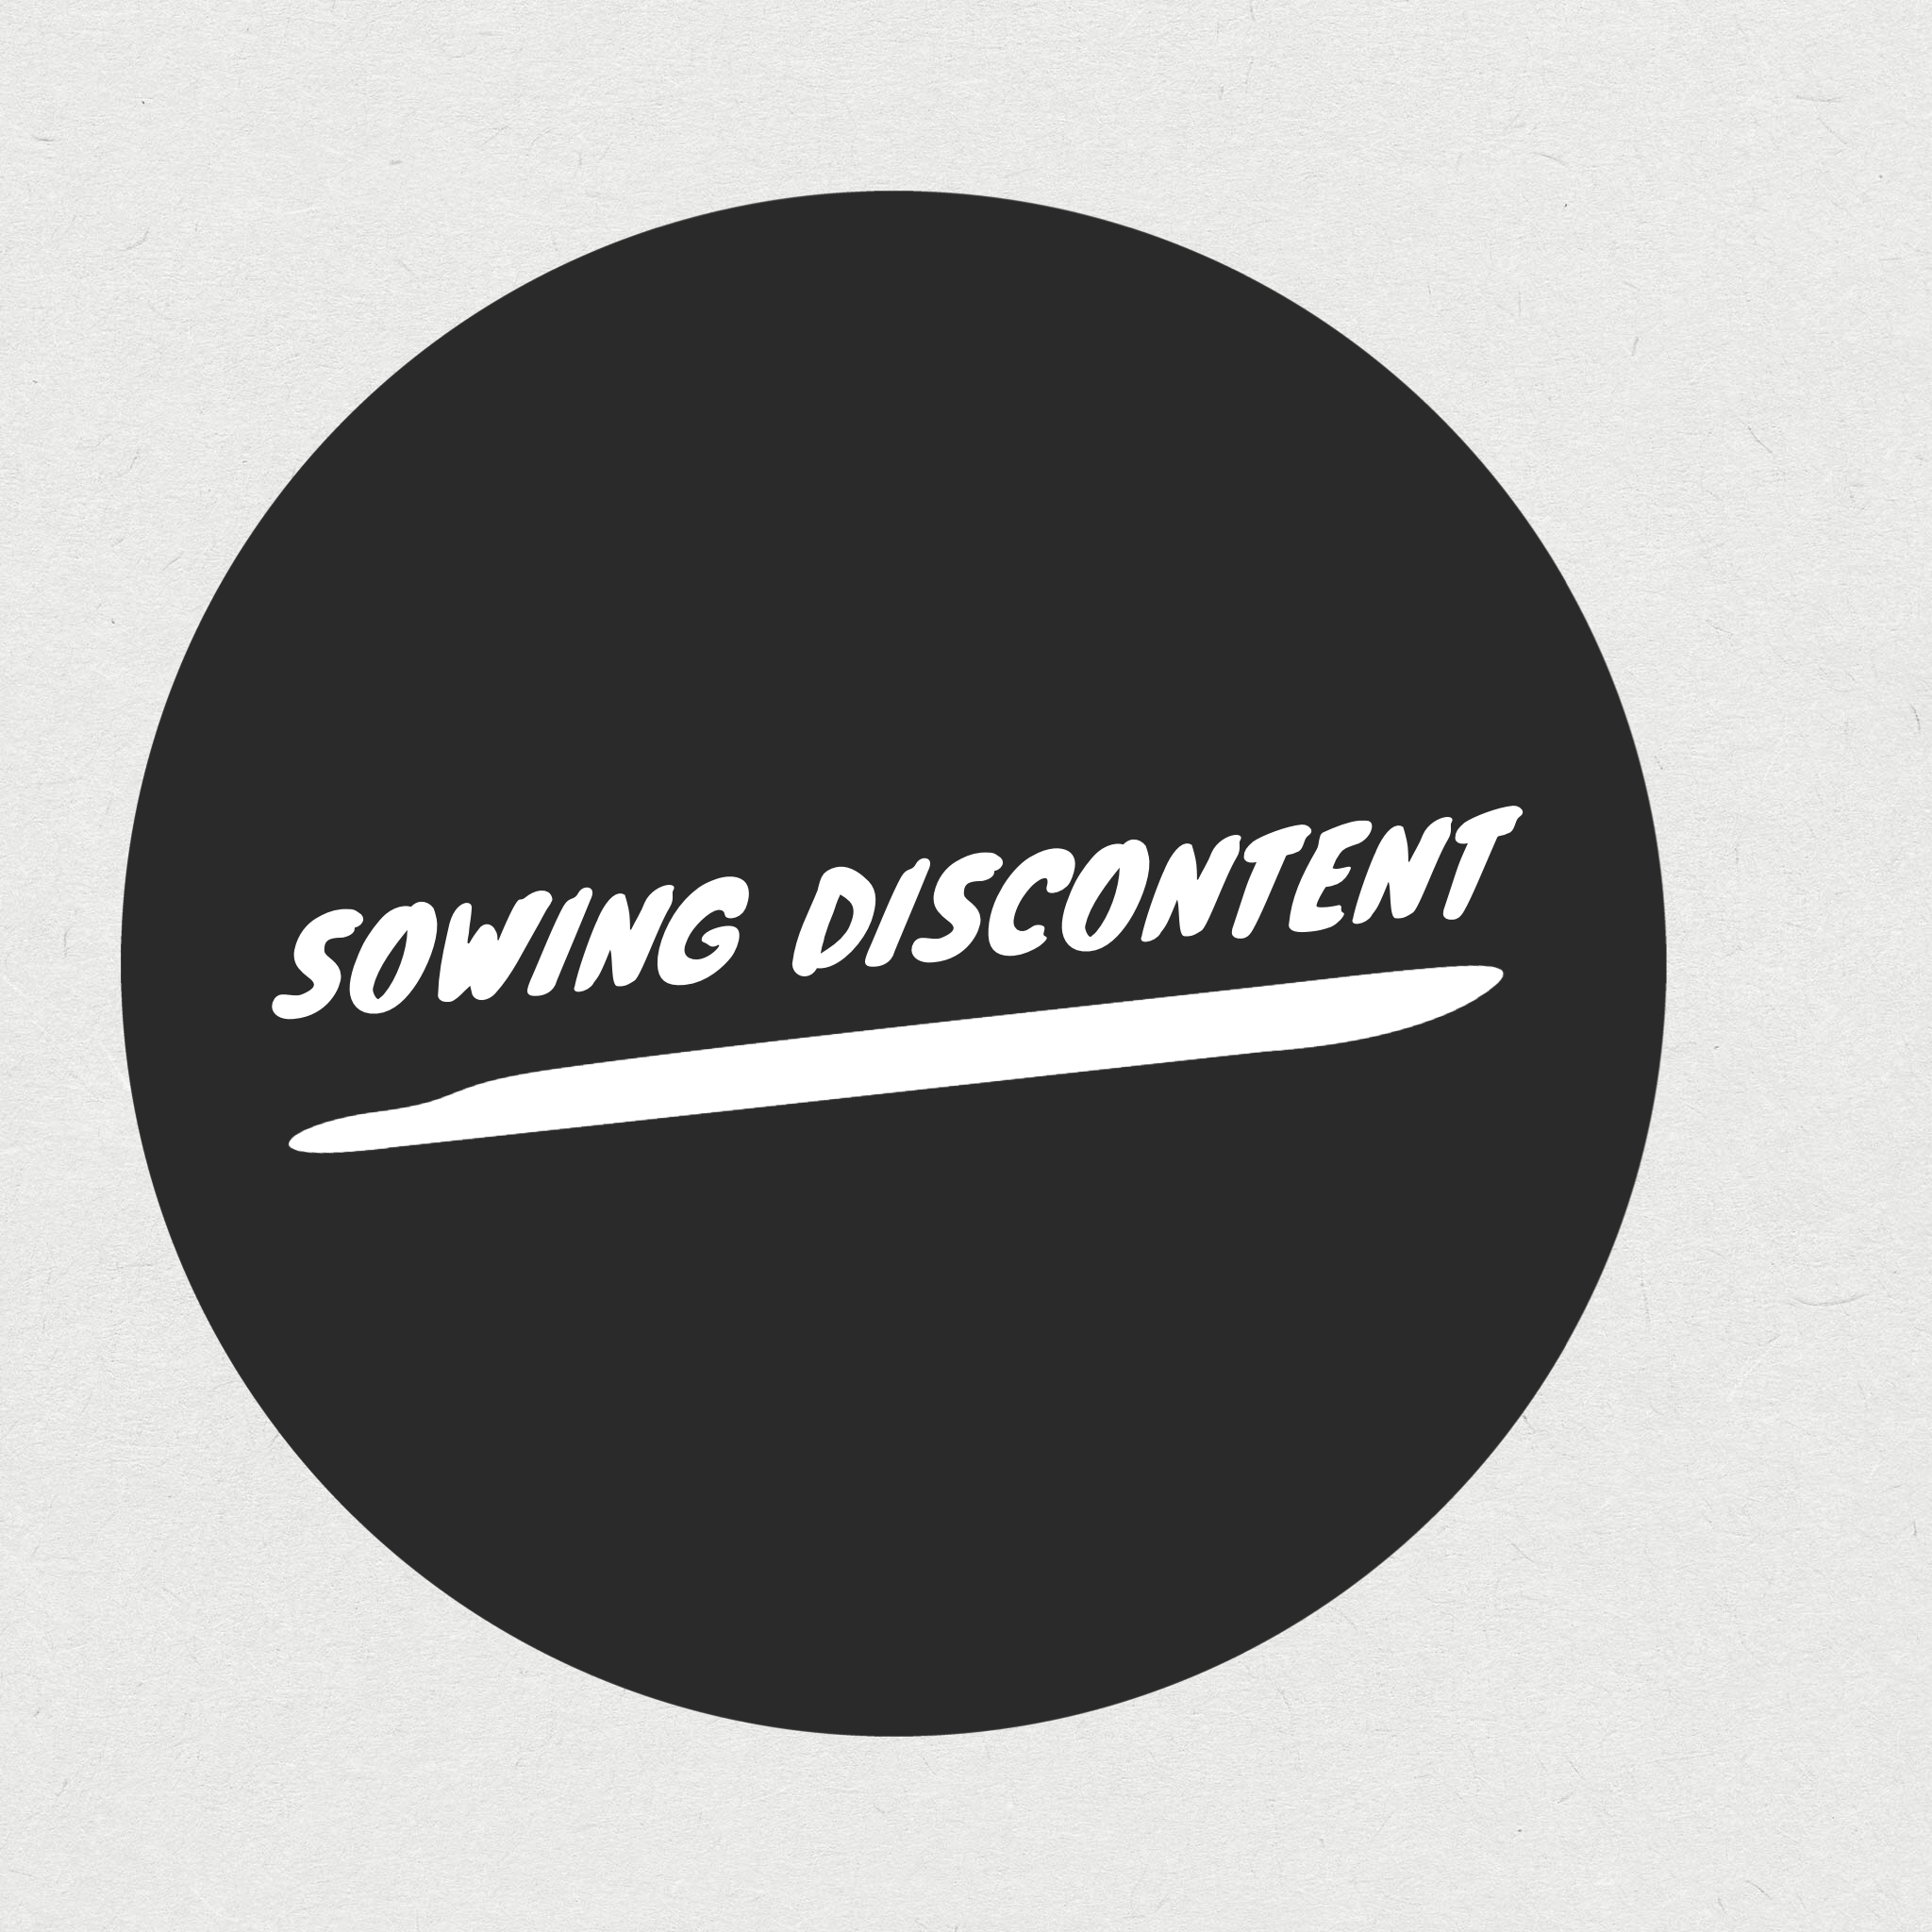 sowing discontent